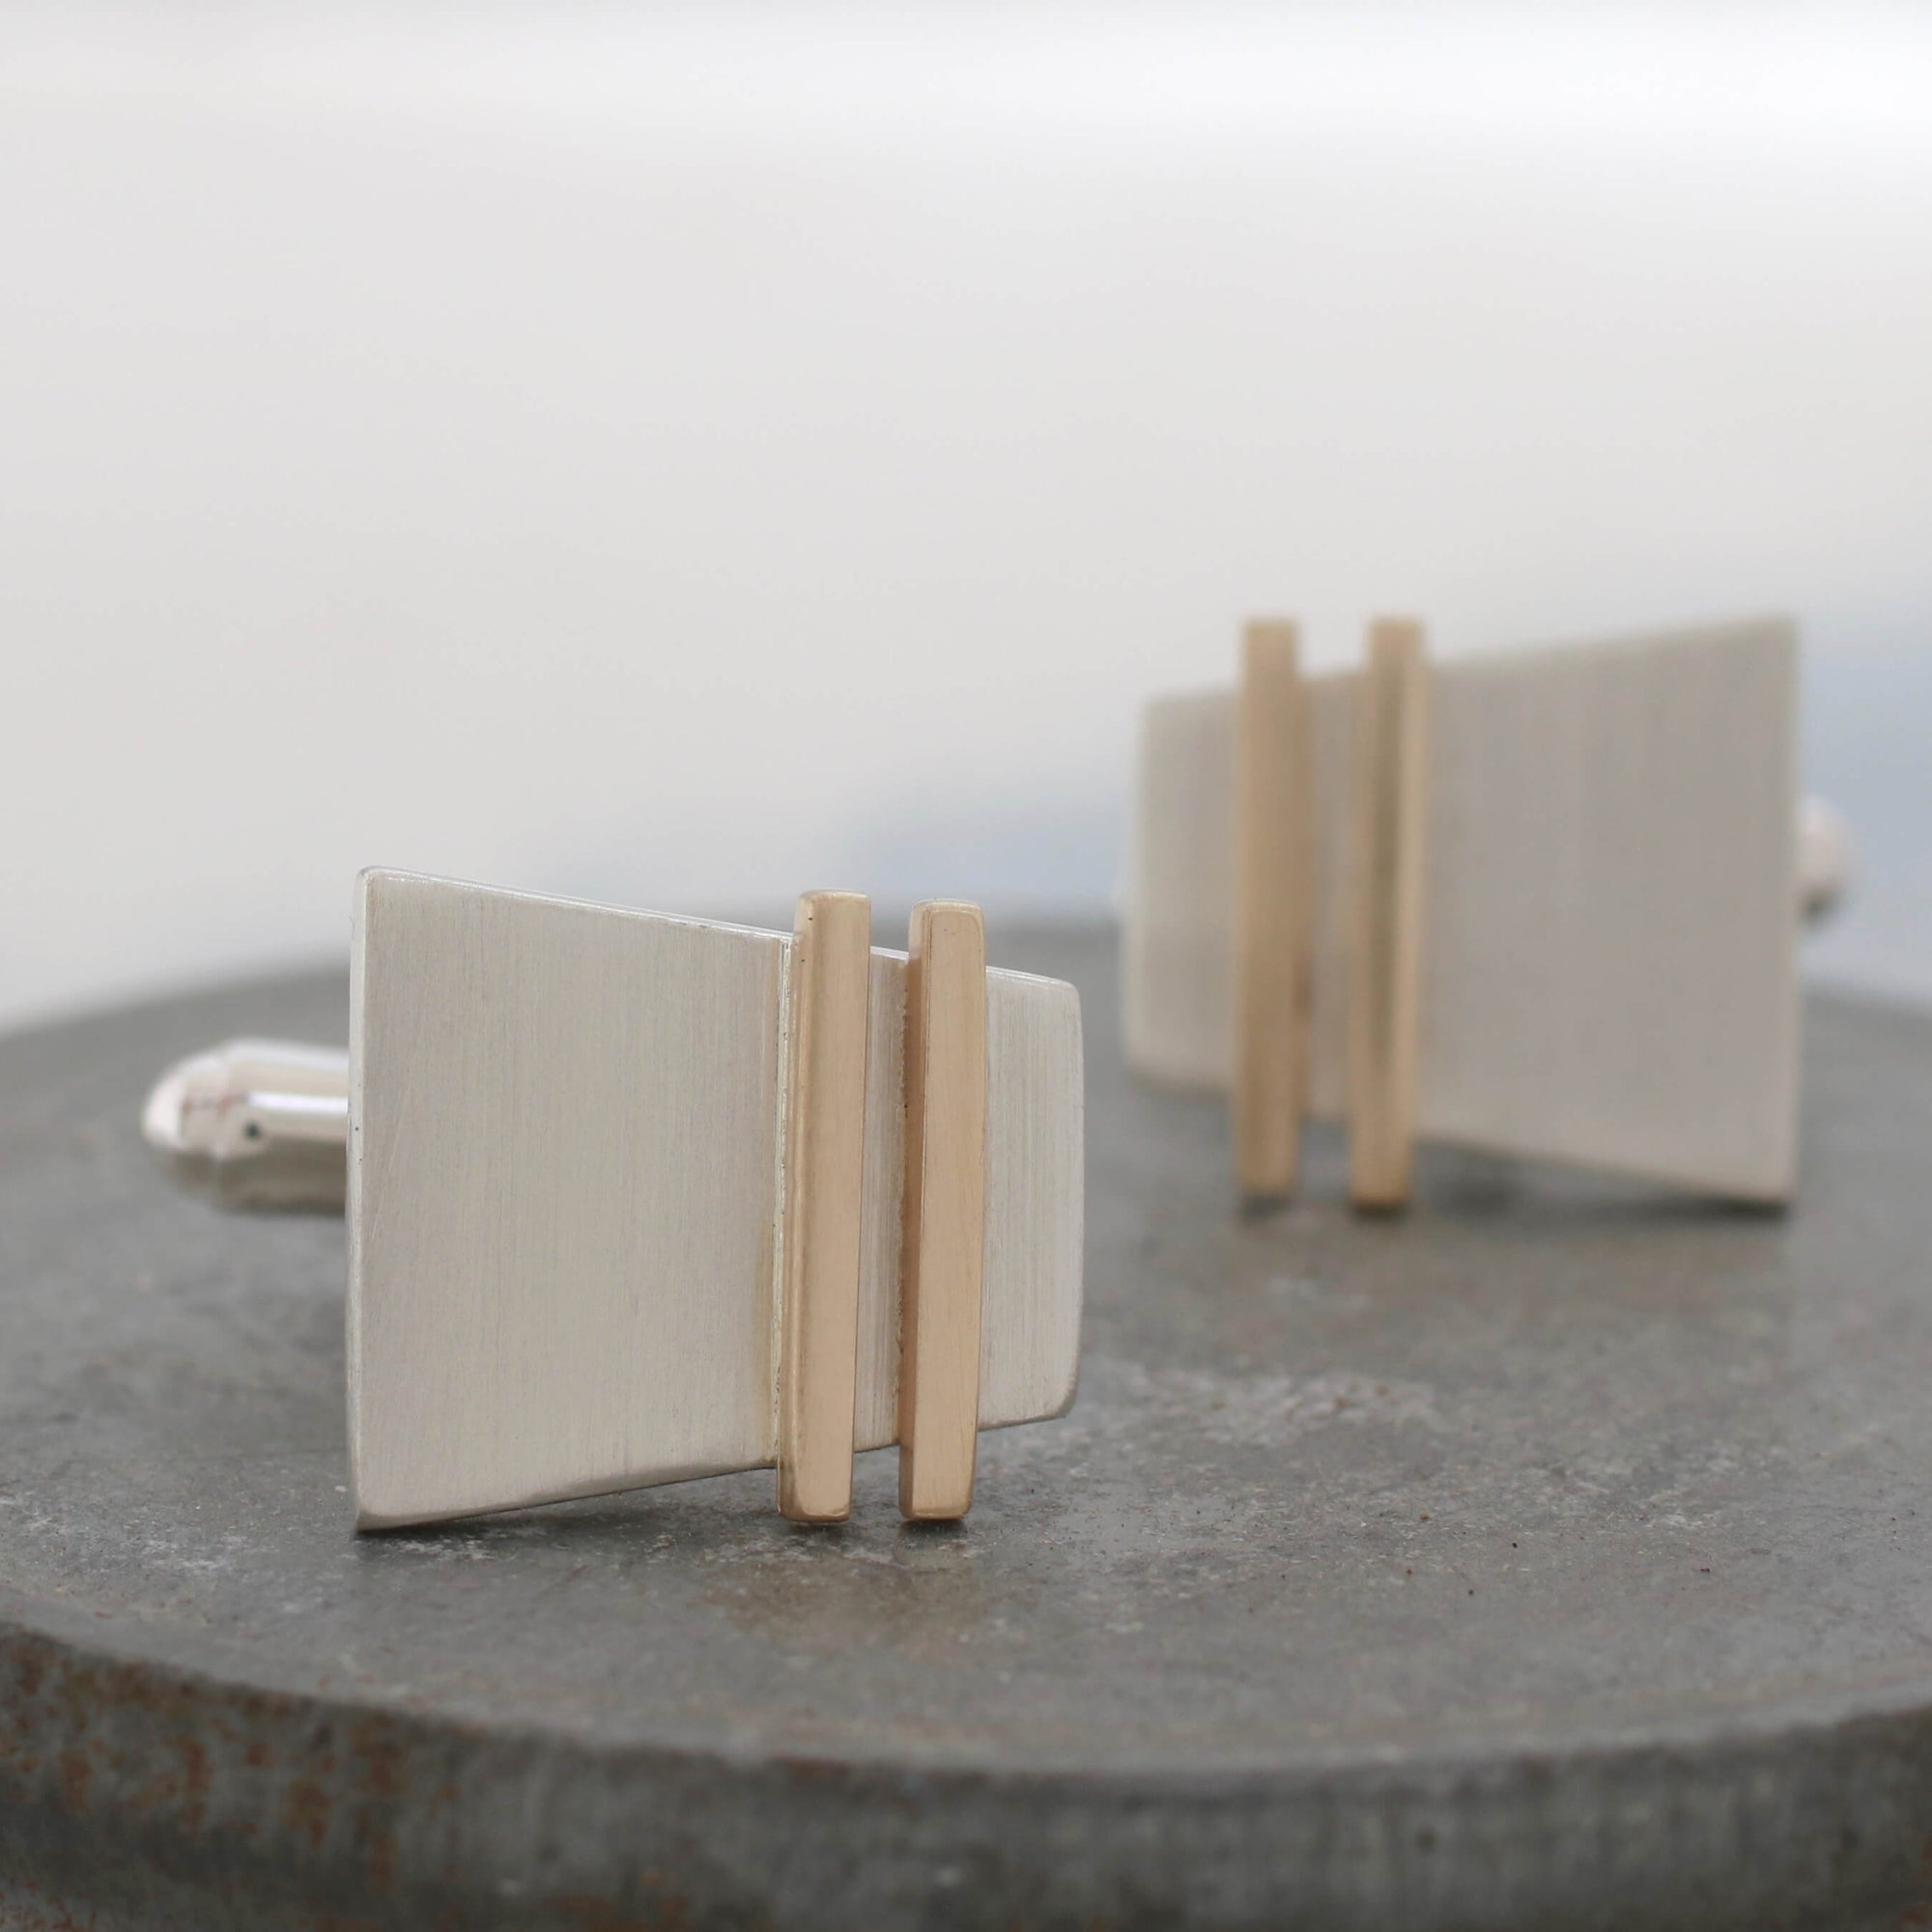 Copy of Geometric Cufflinks. Silver and 9ct Gold Pinstripe